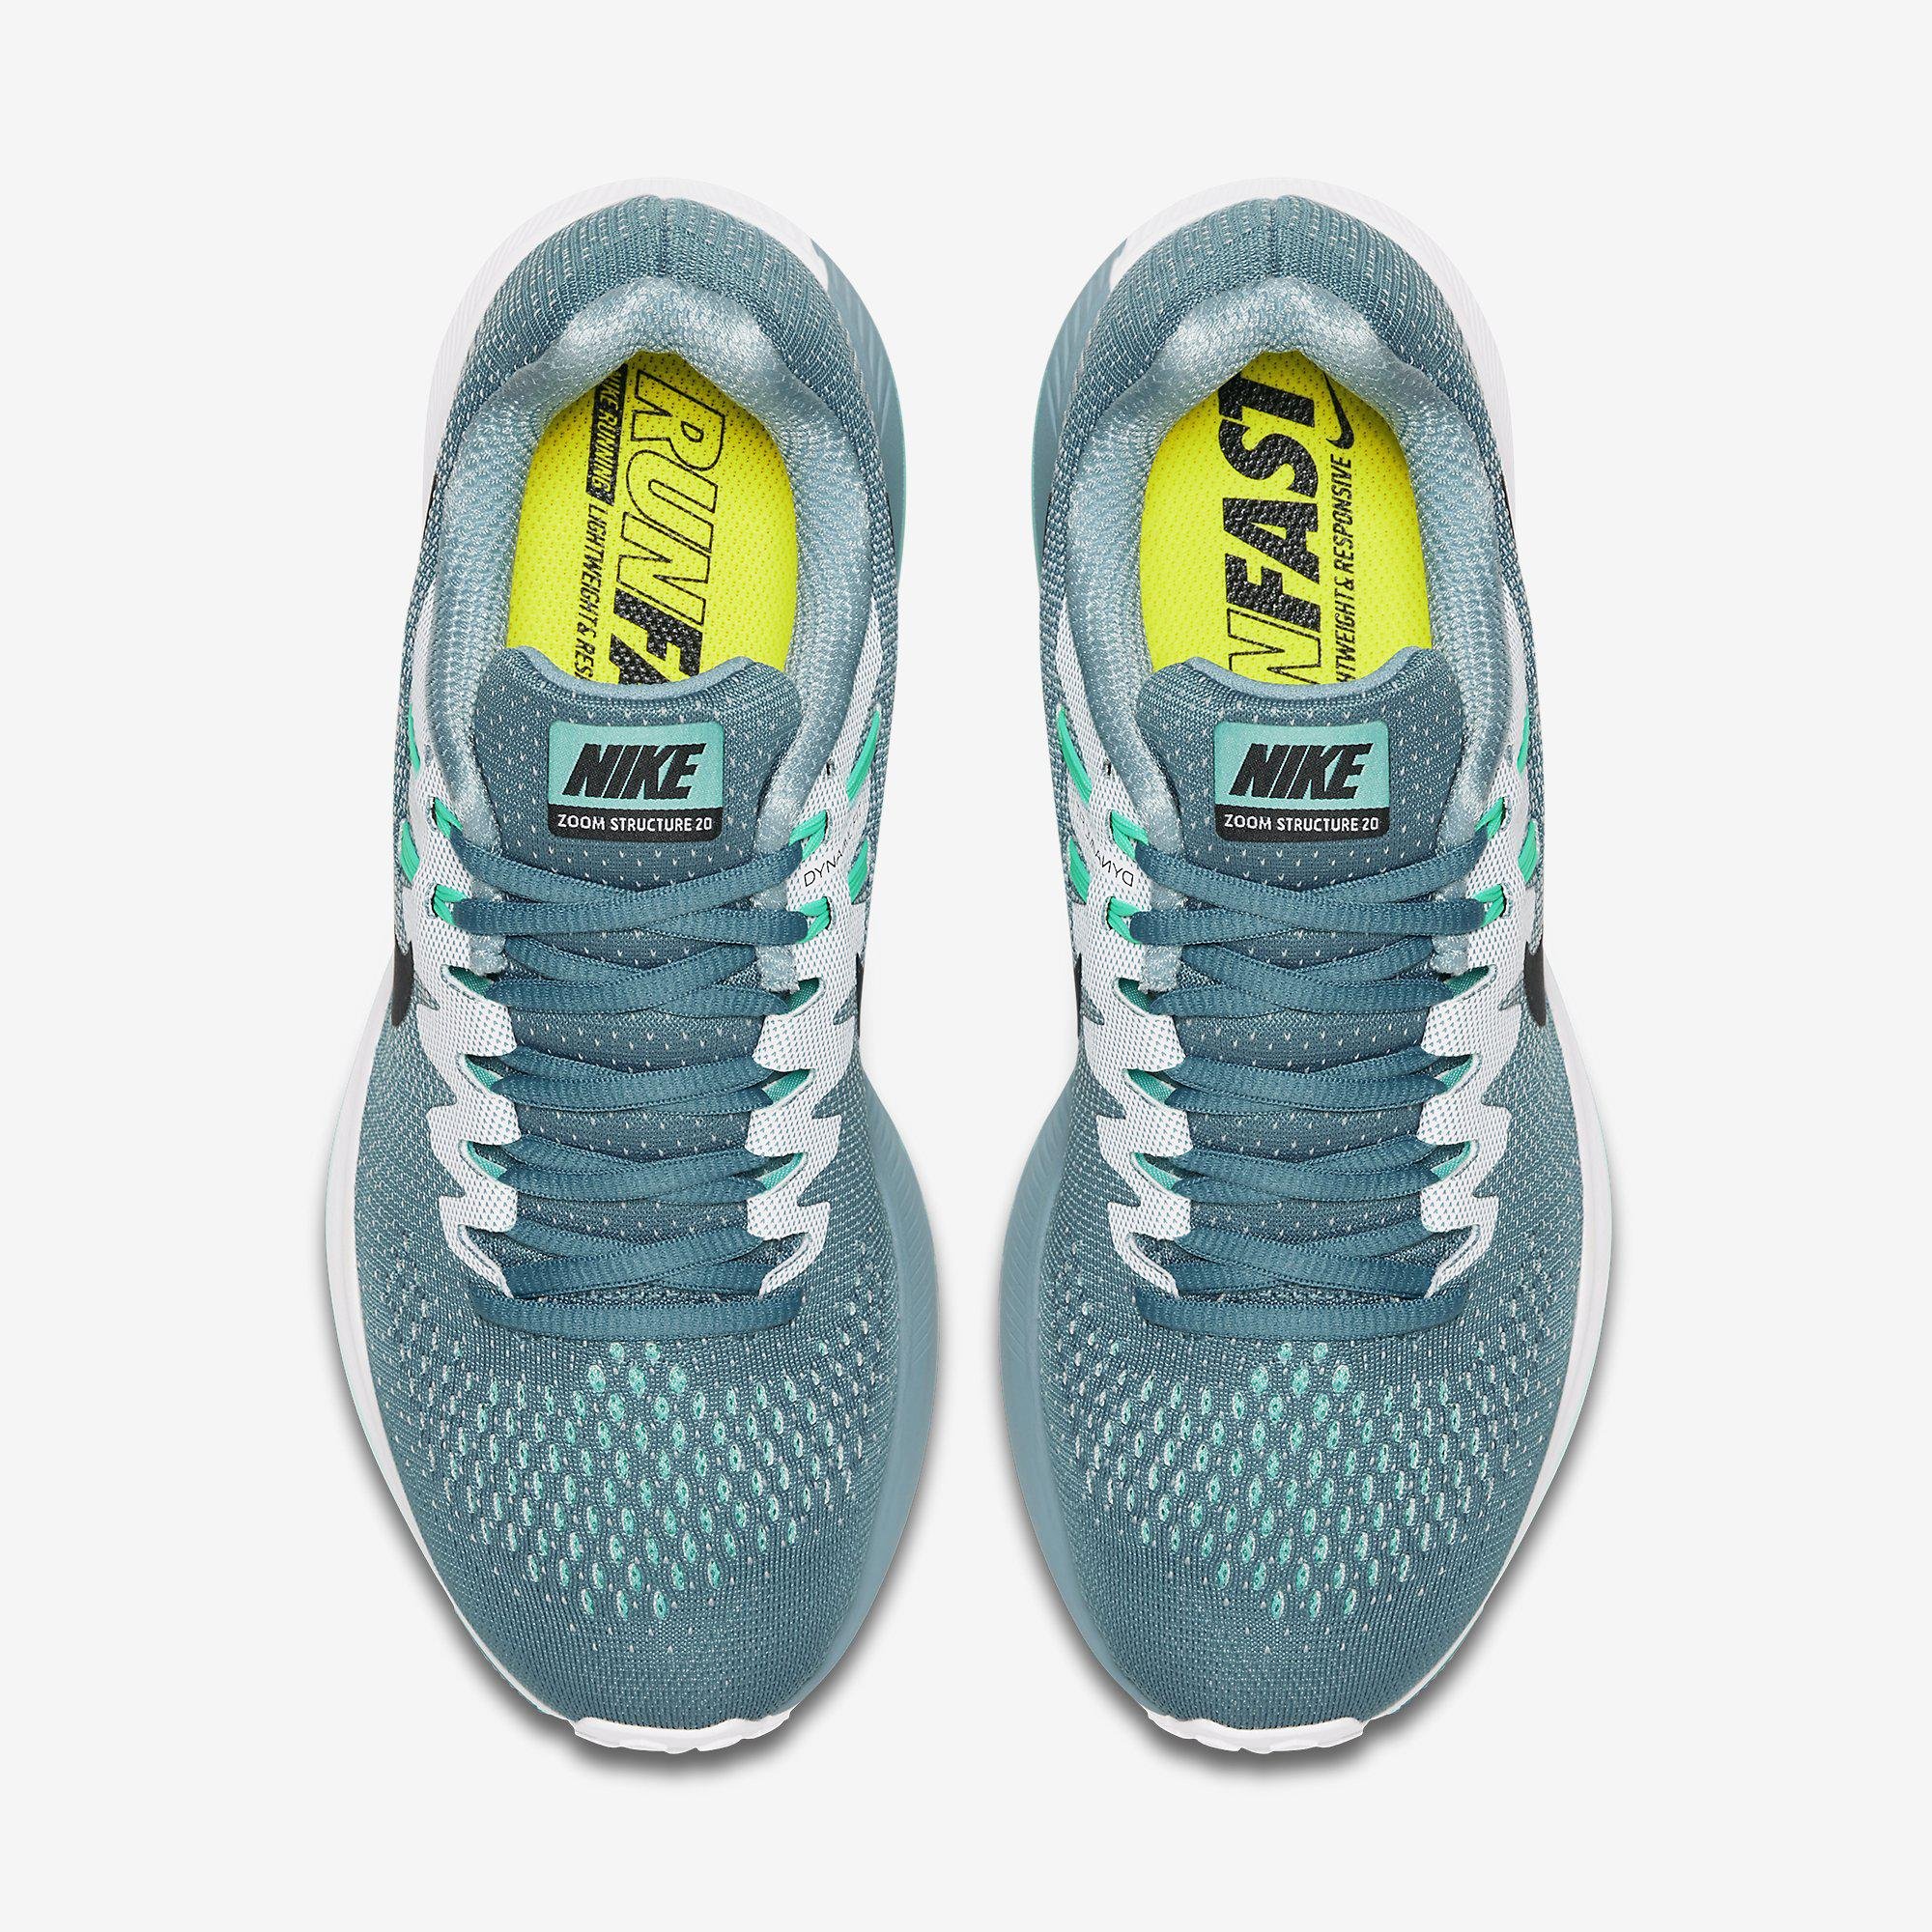 best sneakers 5a599 216d5 Nike Womens Air Zoom Structure 20 Running Shoe - Smokey Blue